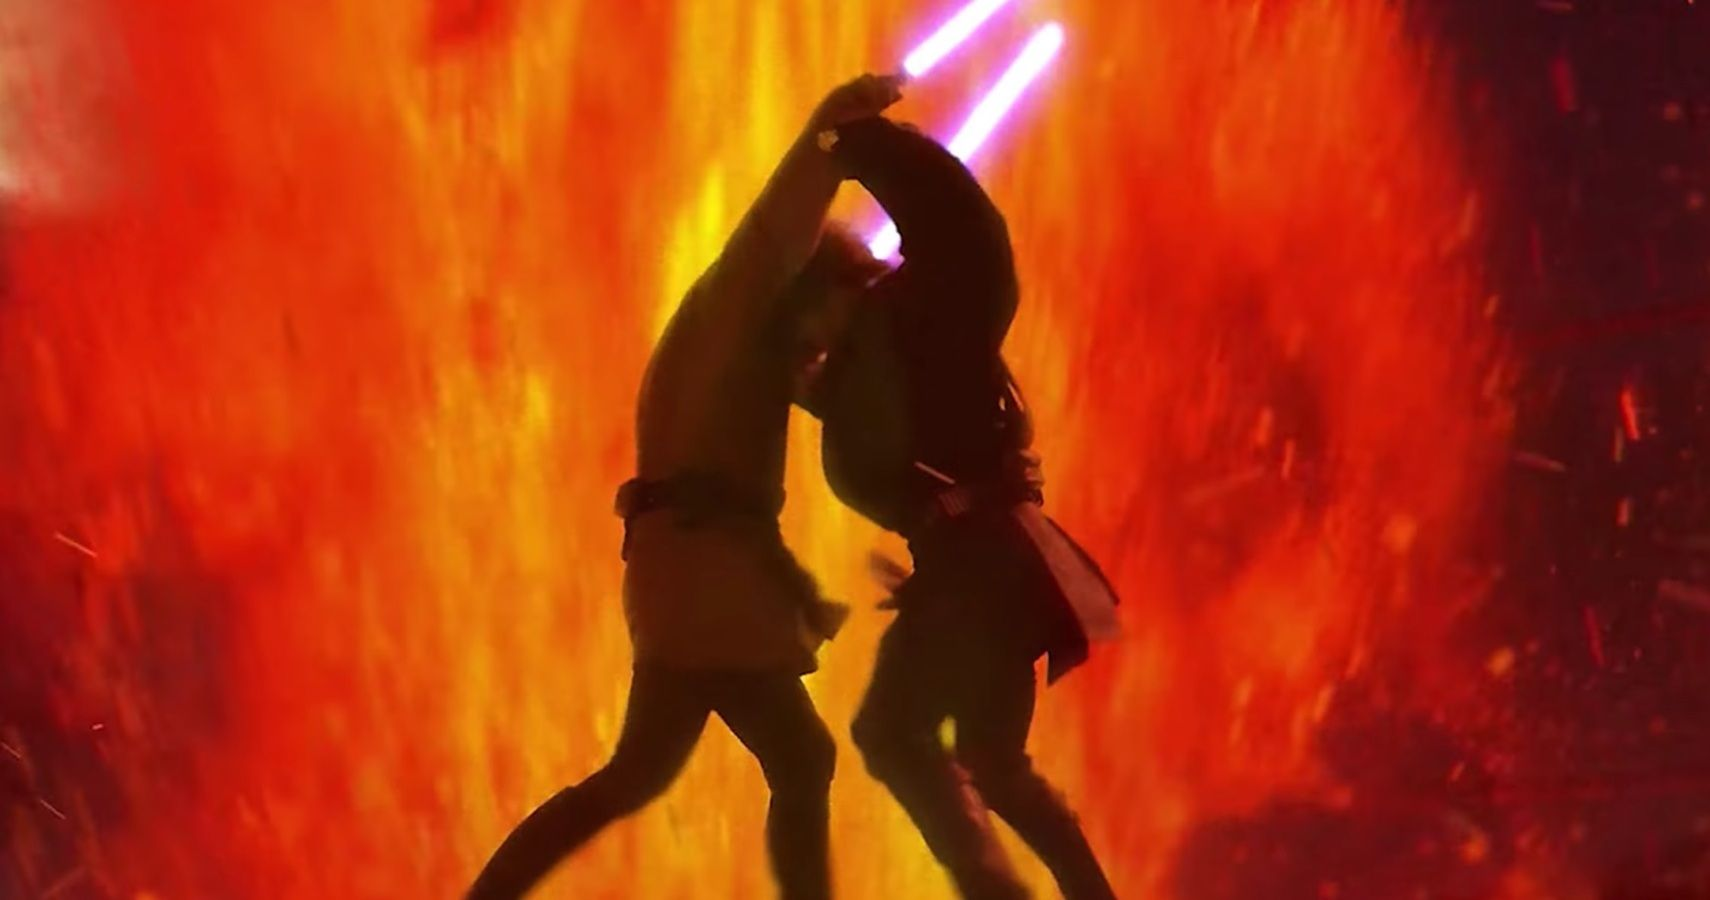 5 Reasons Star Wars Revenge Of The Sith Is Underrated 5 Reasons It S Overrated